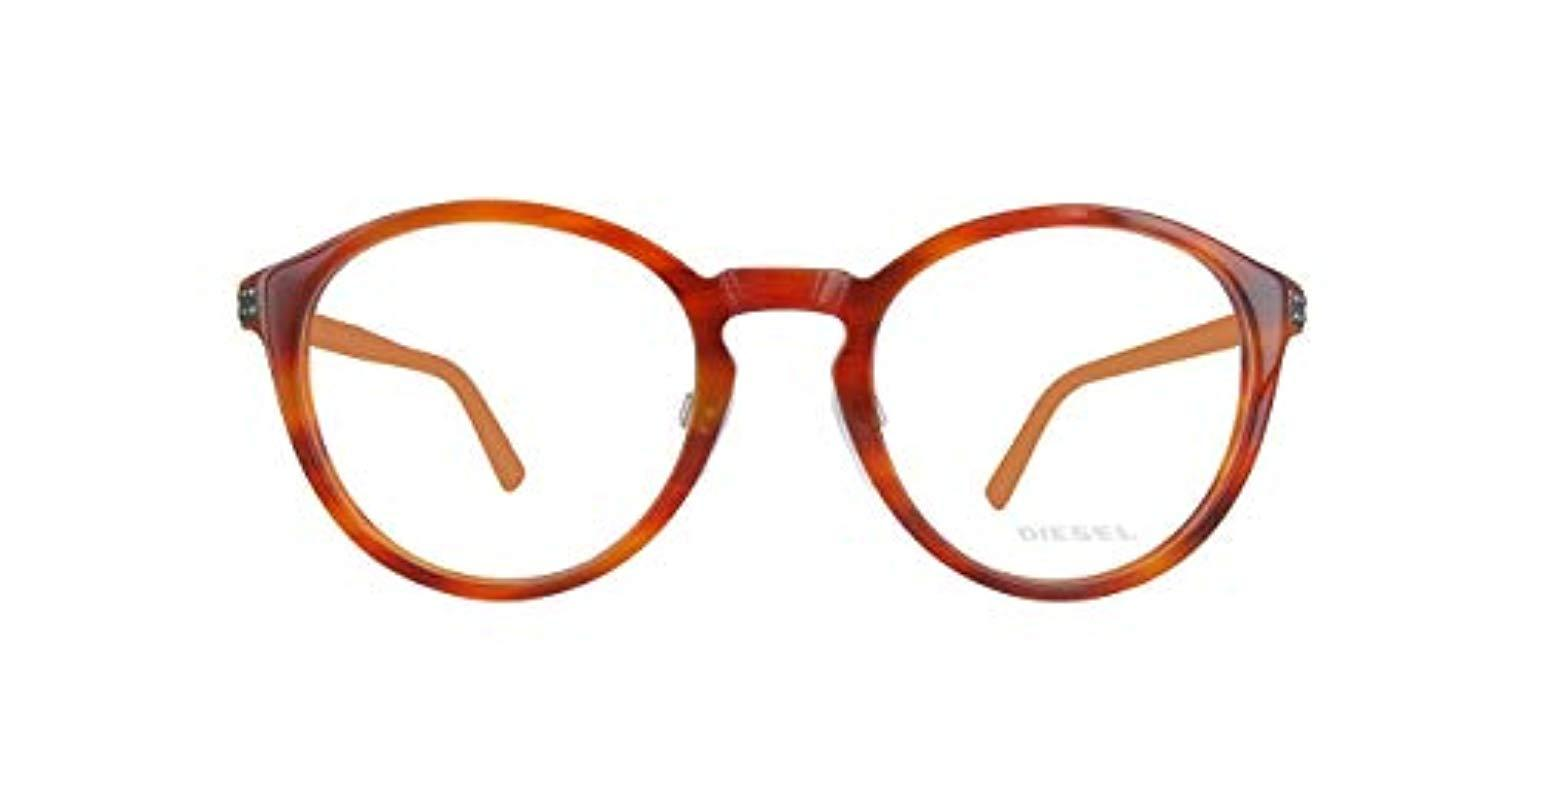 54.0 Blue Blue Diesel Unisex Adults Brillengestelle DL4042 090-54-0-0 Optical Frames